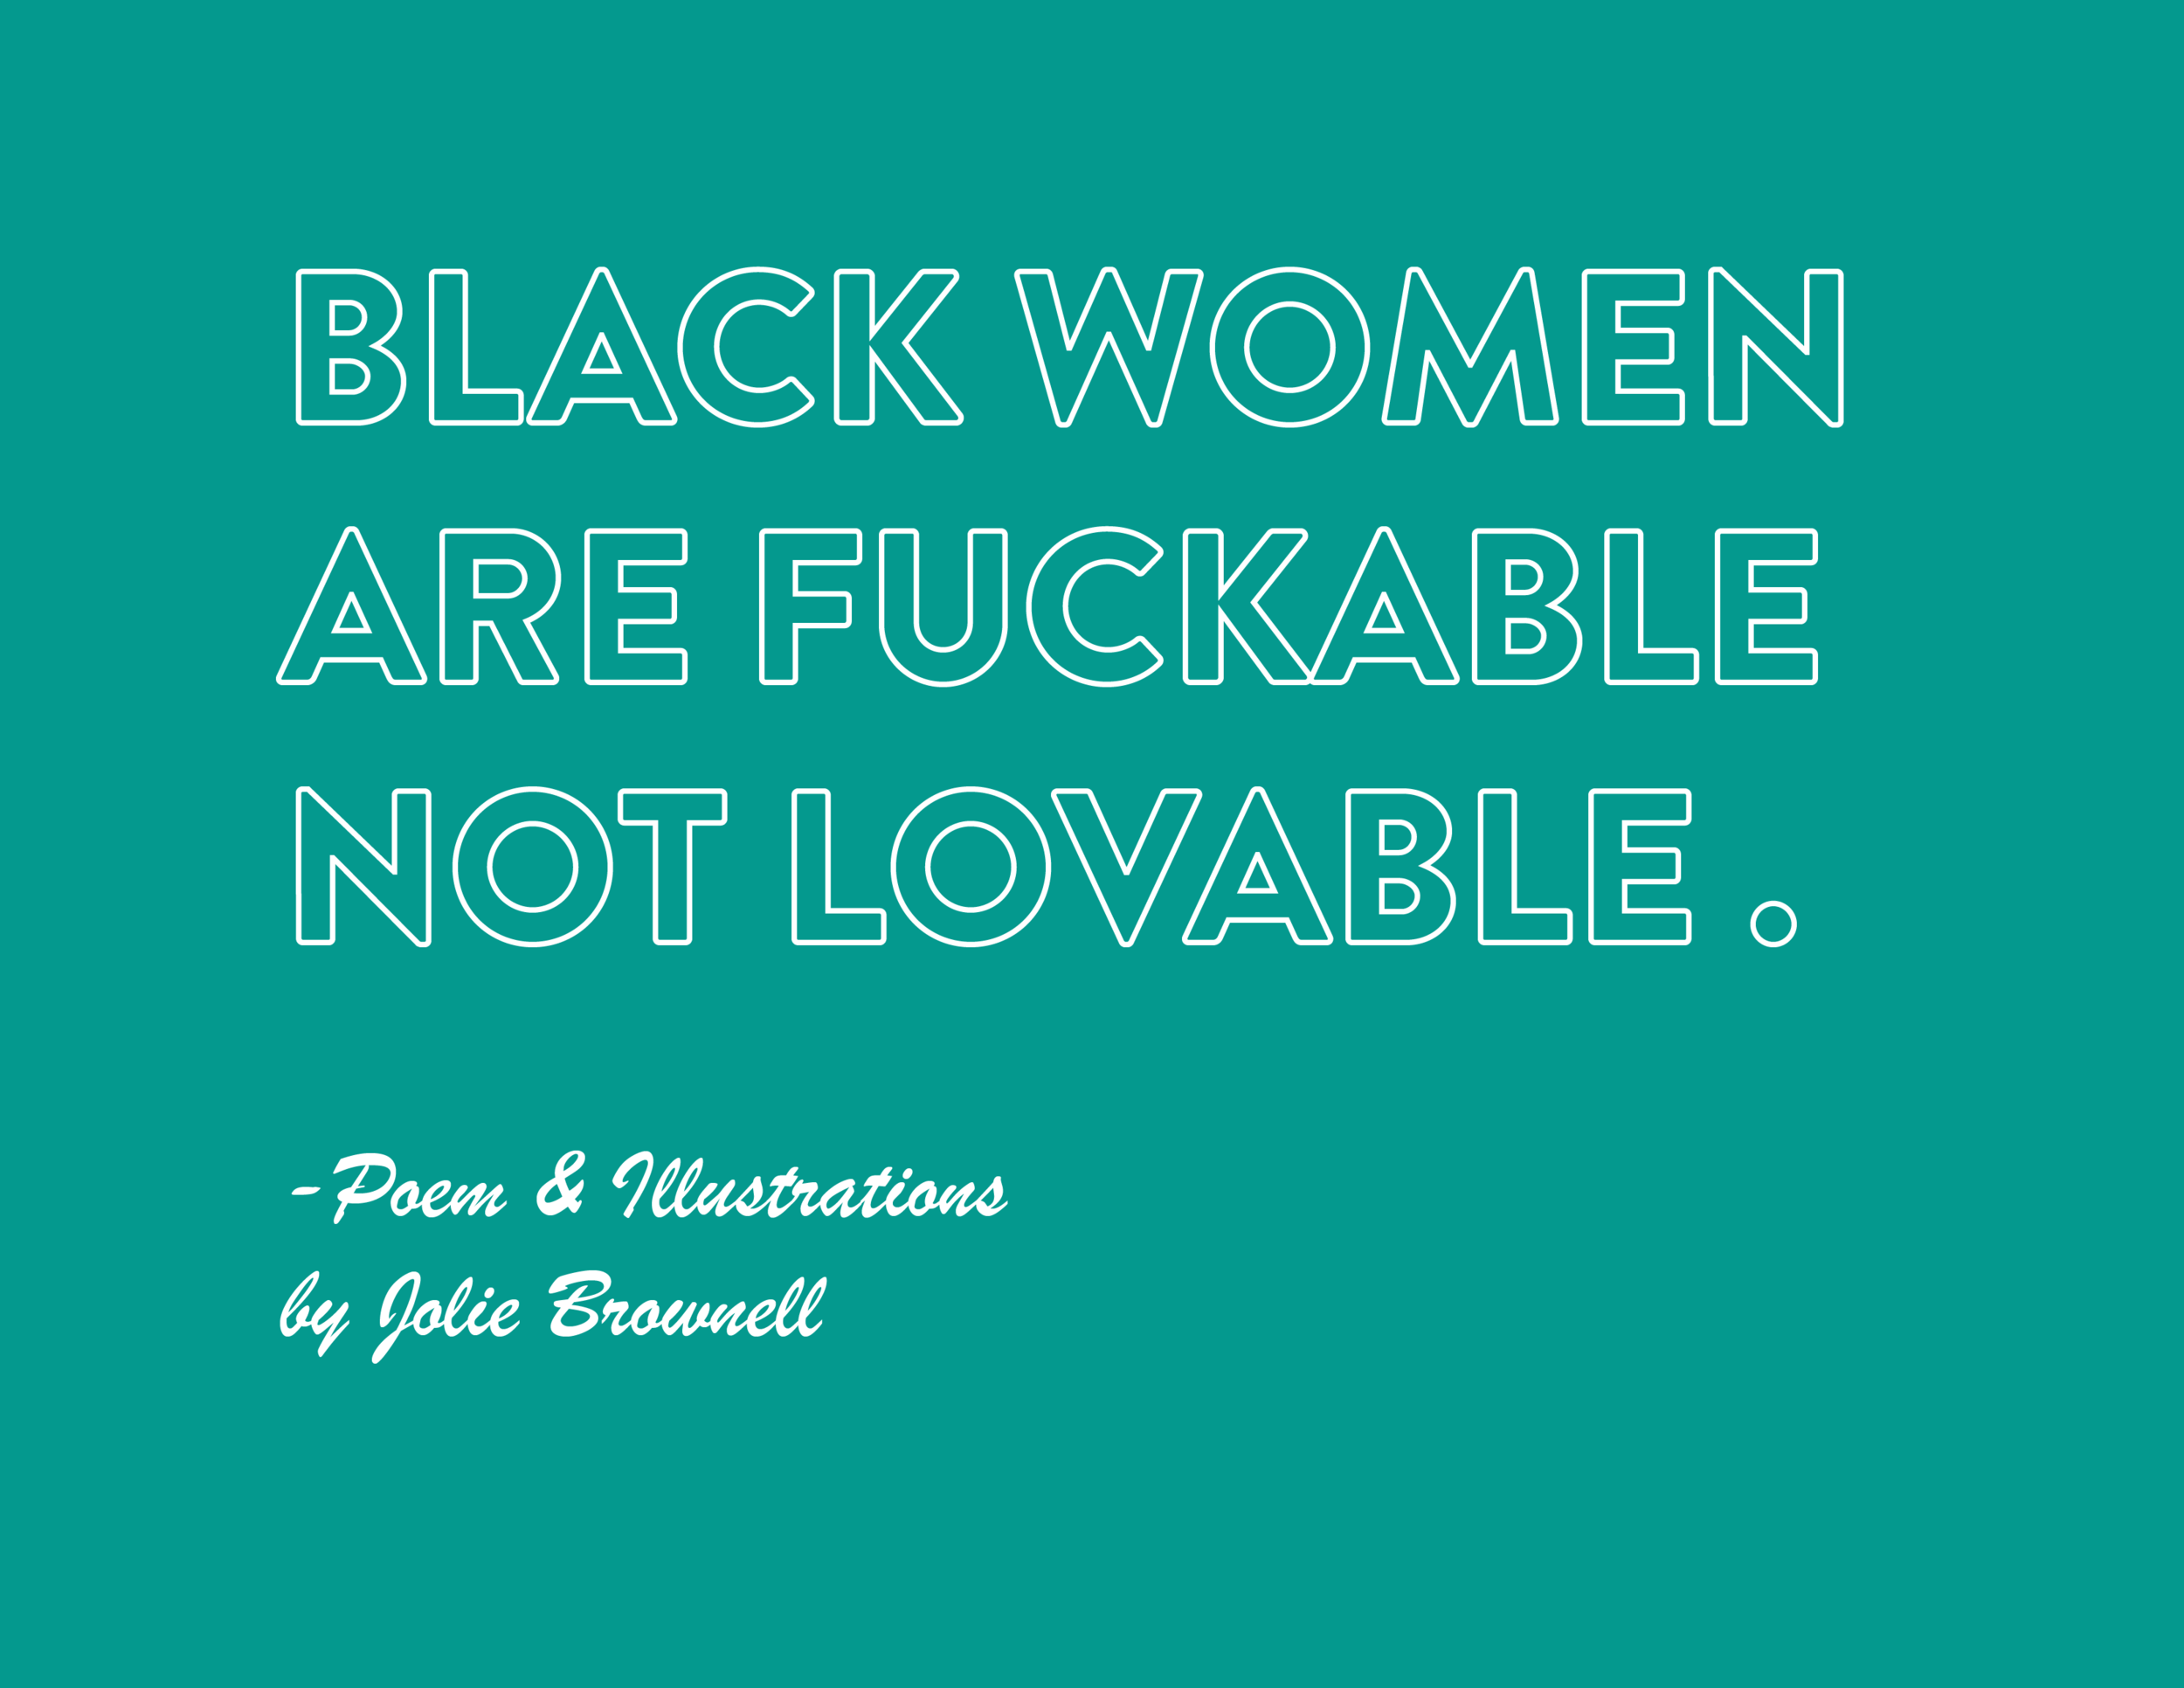 Black Women are Fuckable Not Lovable-01.png